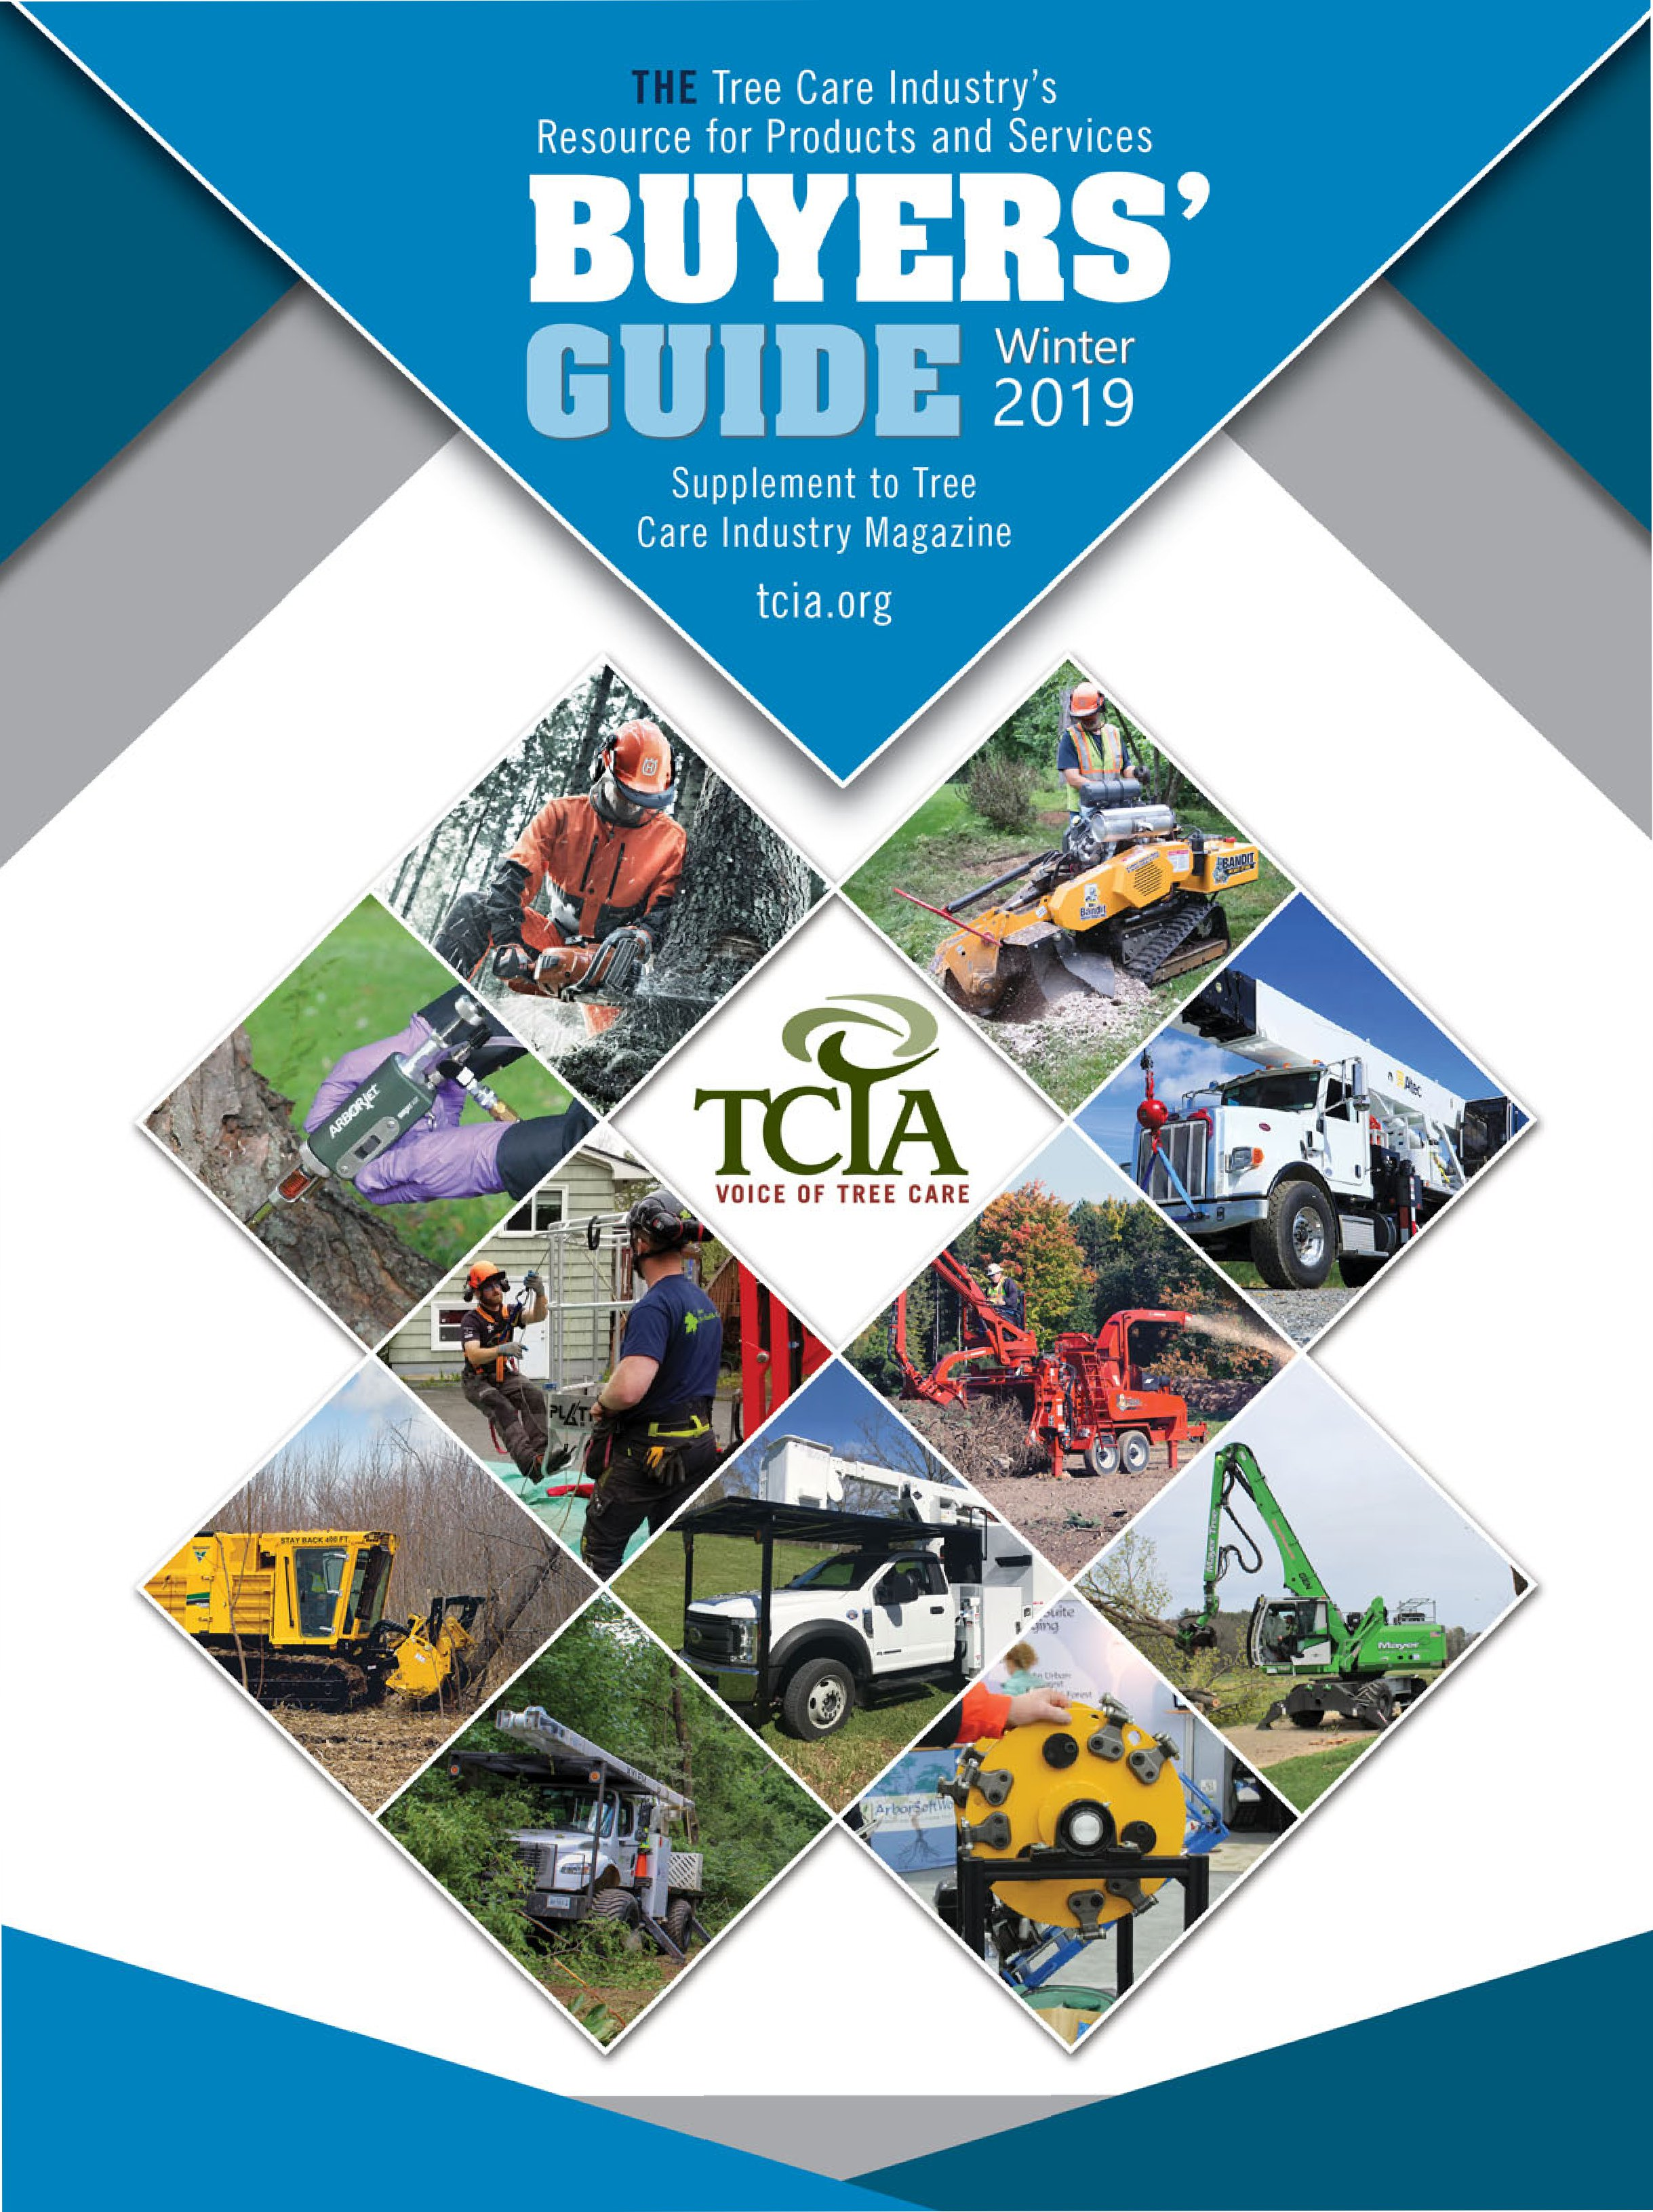 TCI Buyers Guide Winter 2019